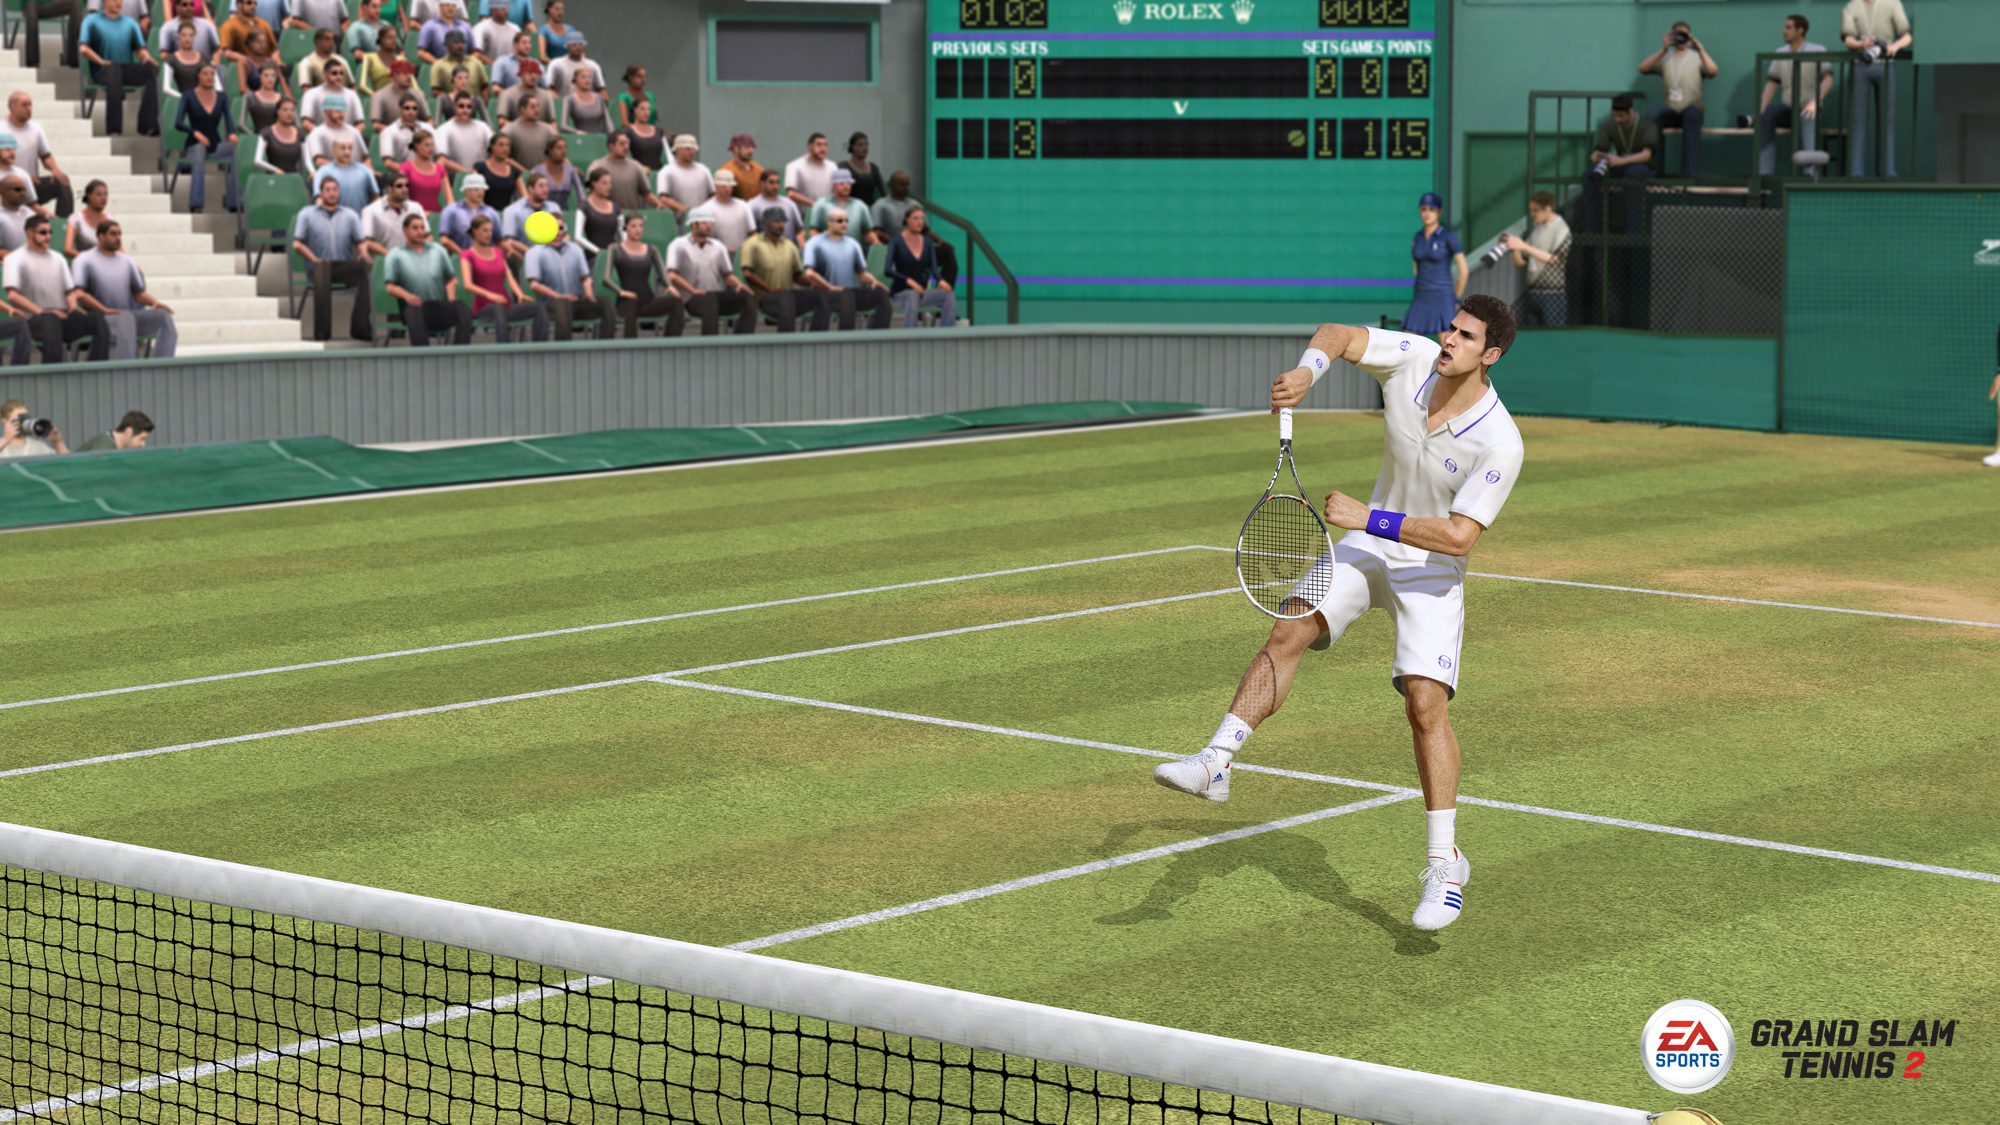 Grand Slam Tennis 2 – Shots Straight Down the Line